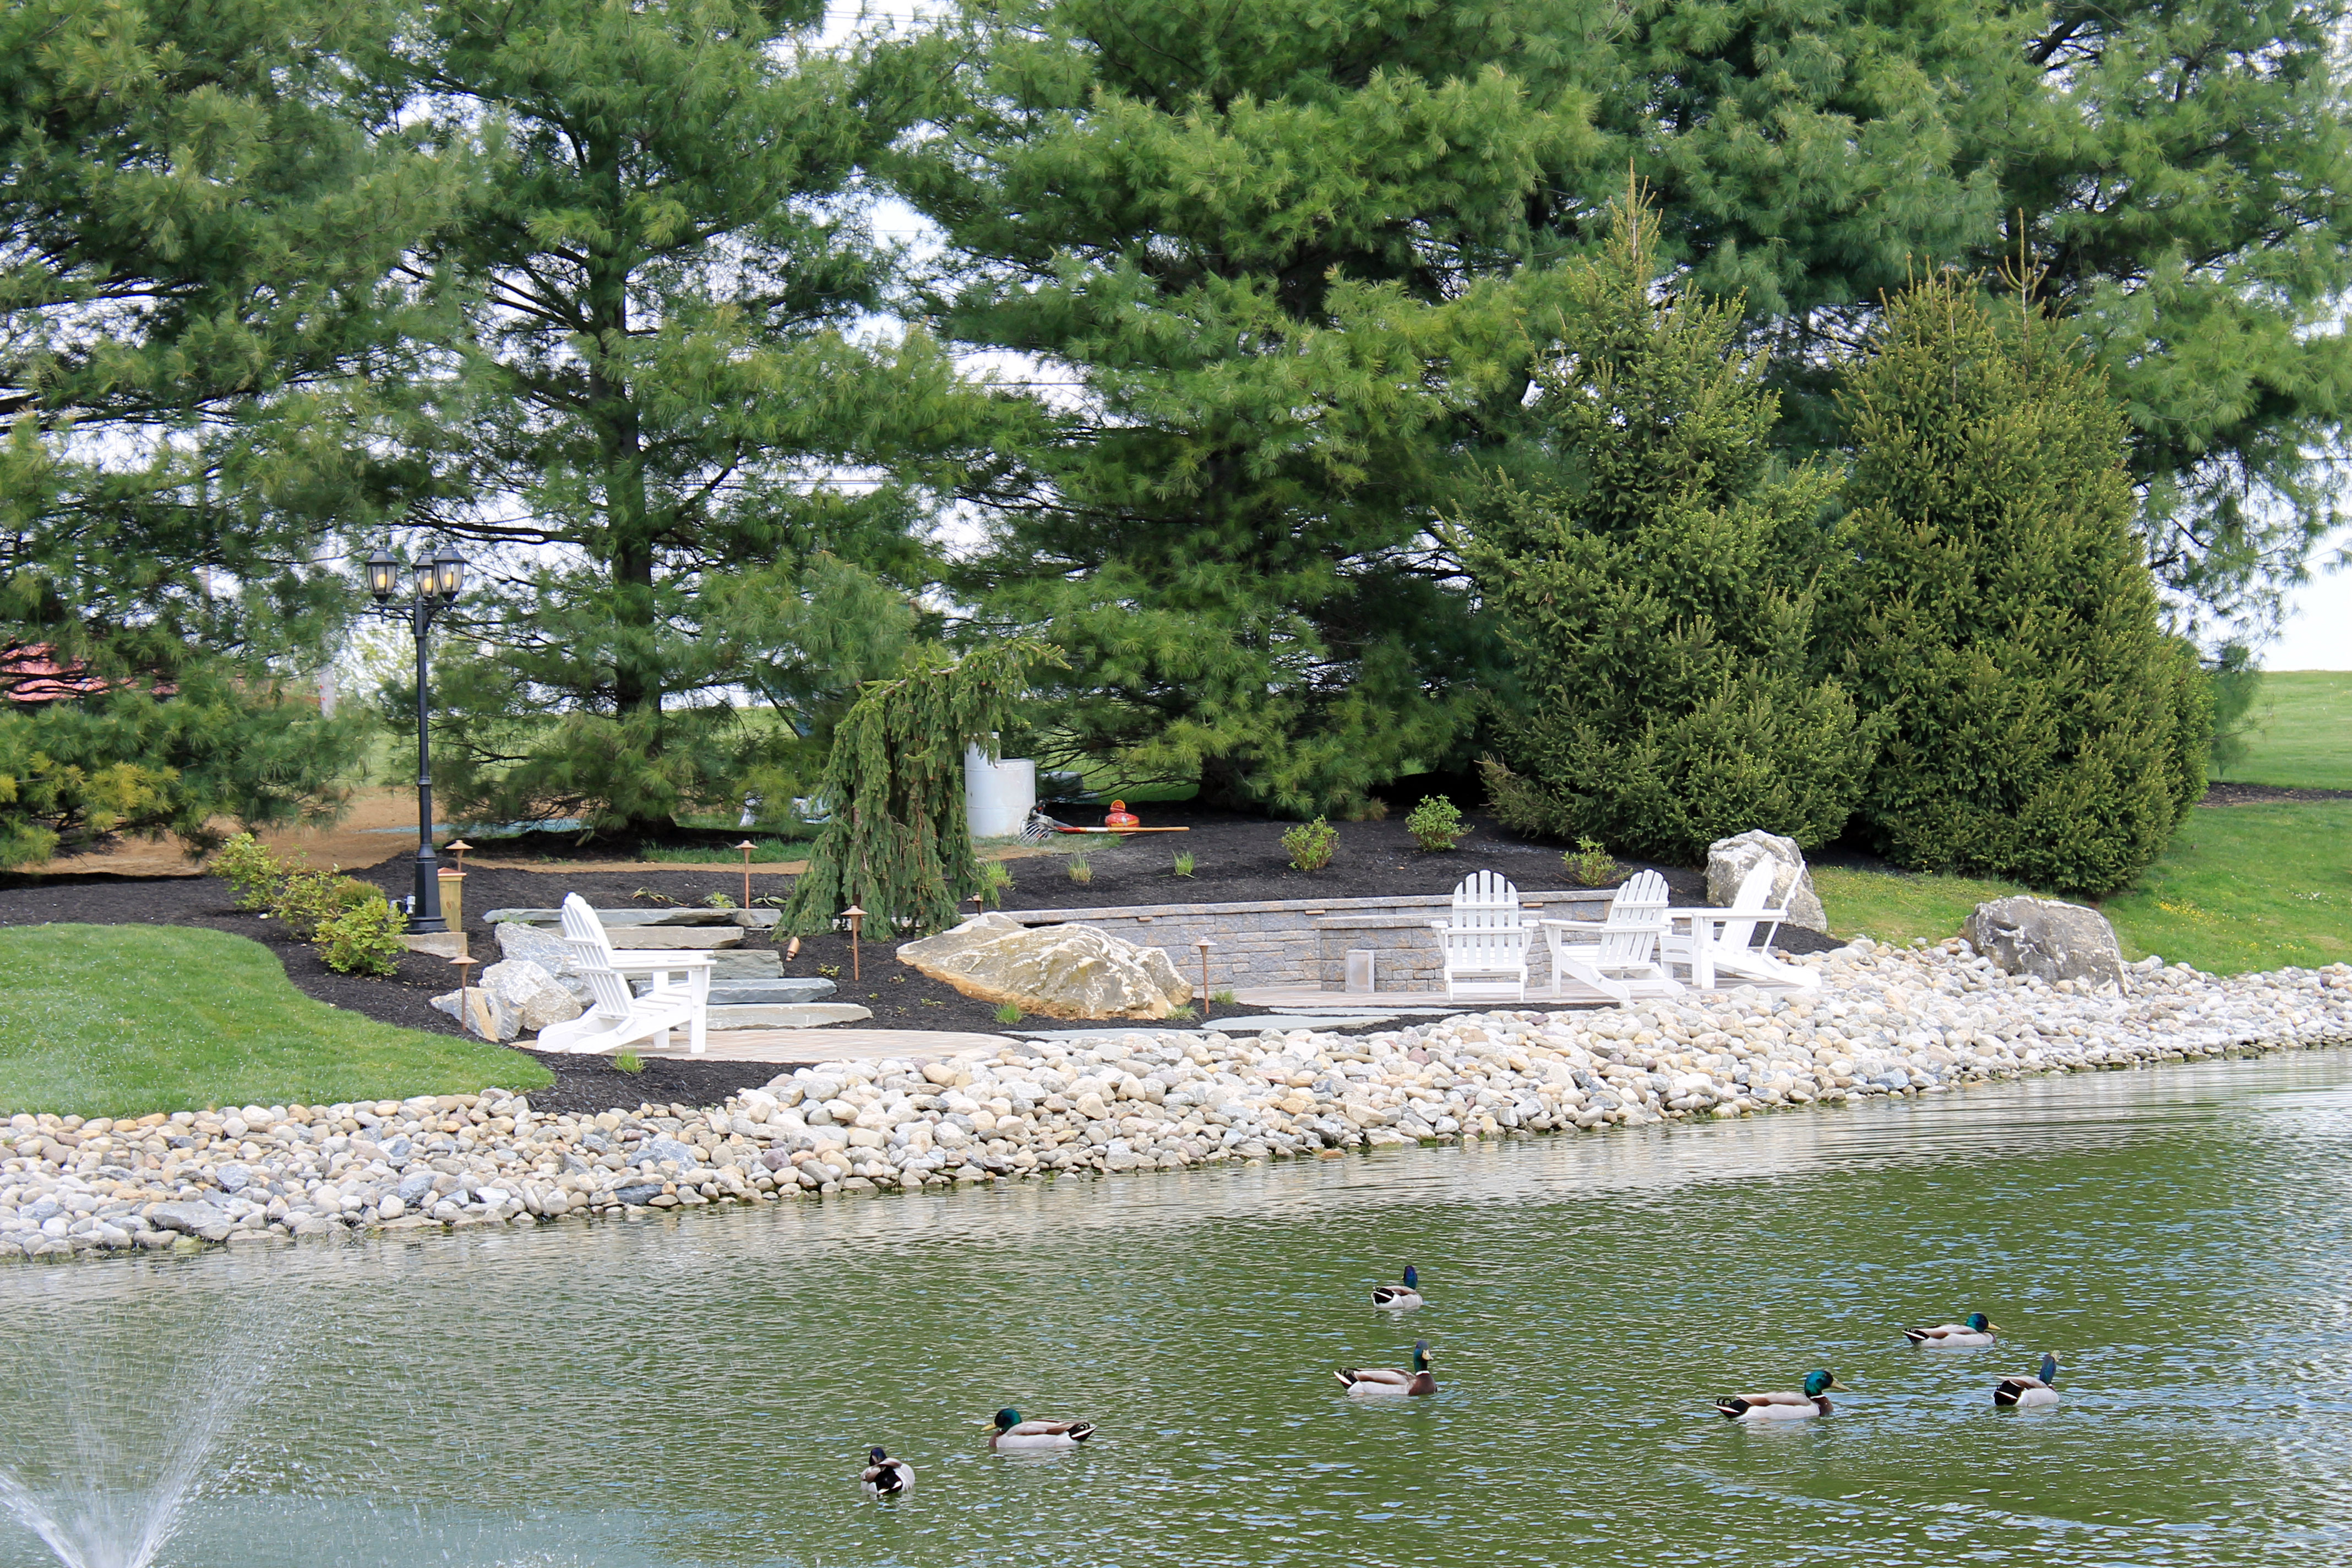 Hotels in lancaster pennsylvania lodging in lancaster pa for Virtual koi fish pond